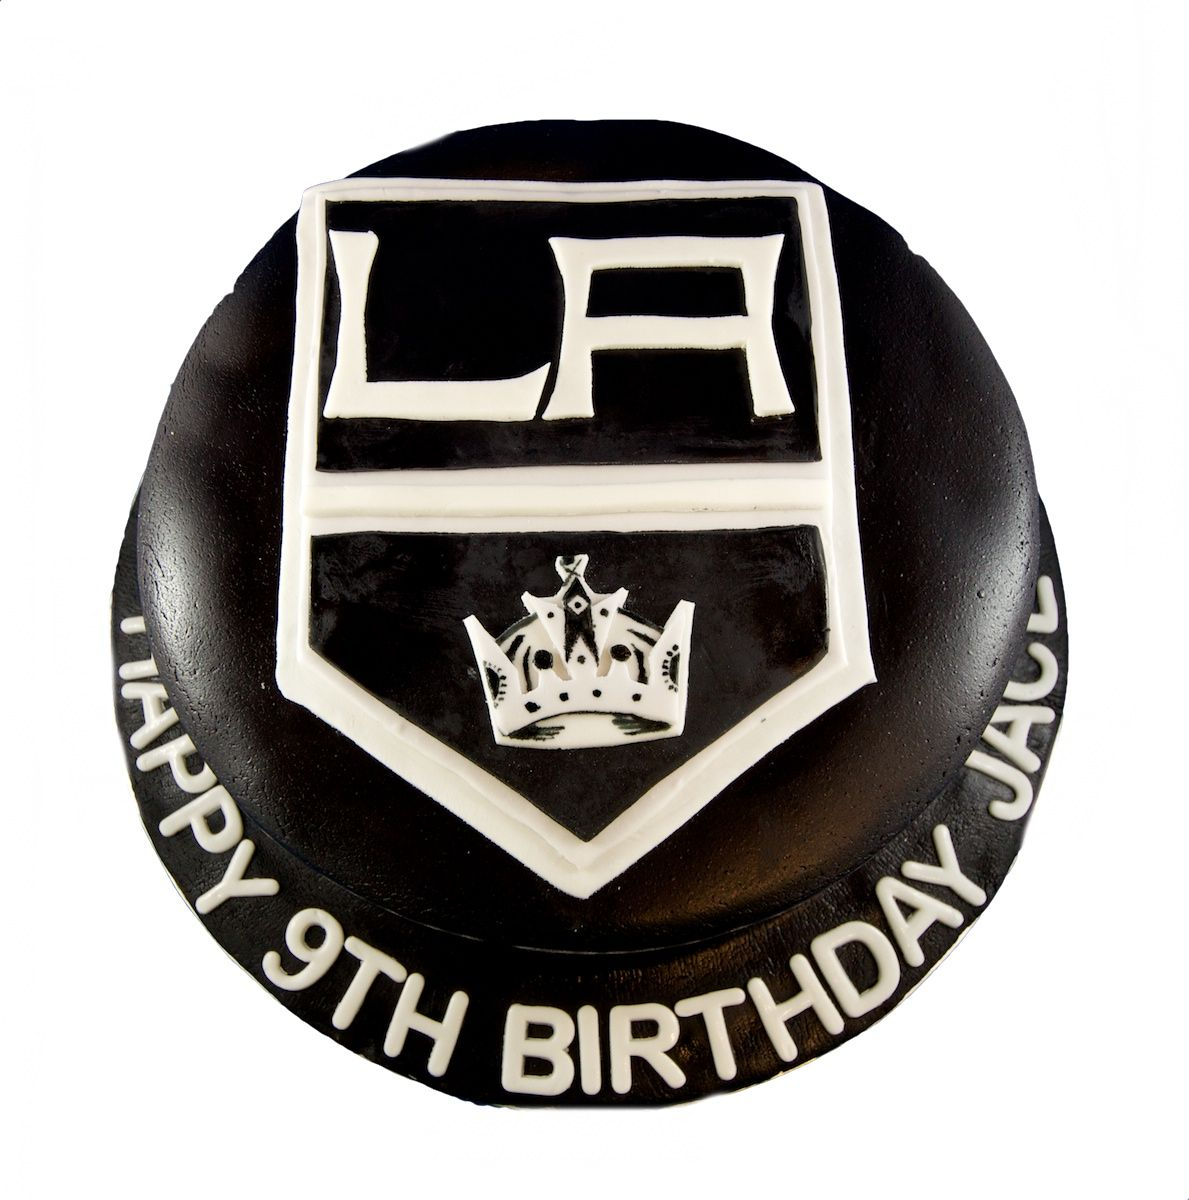 LA Kings Hockey Theme fondant cake LOS ANGELES KINGS Pinterest